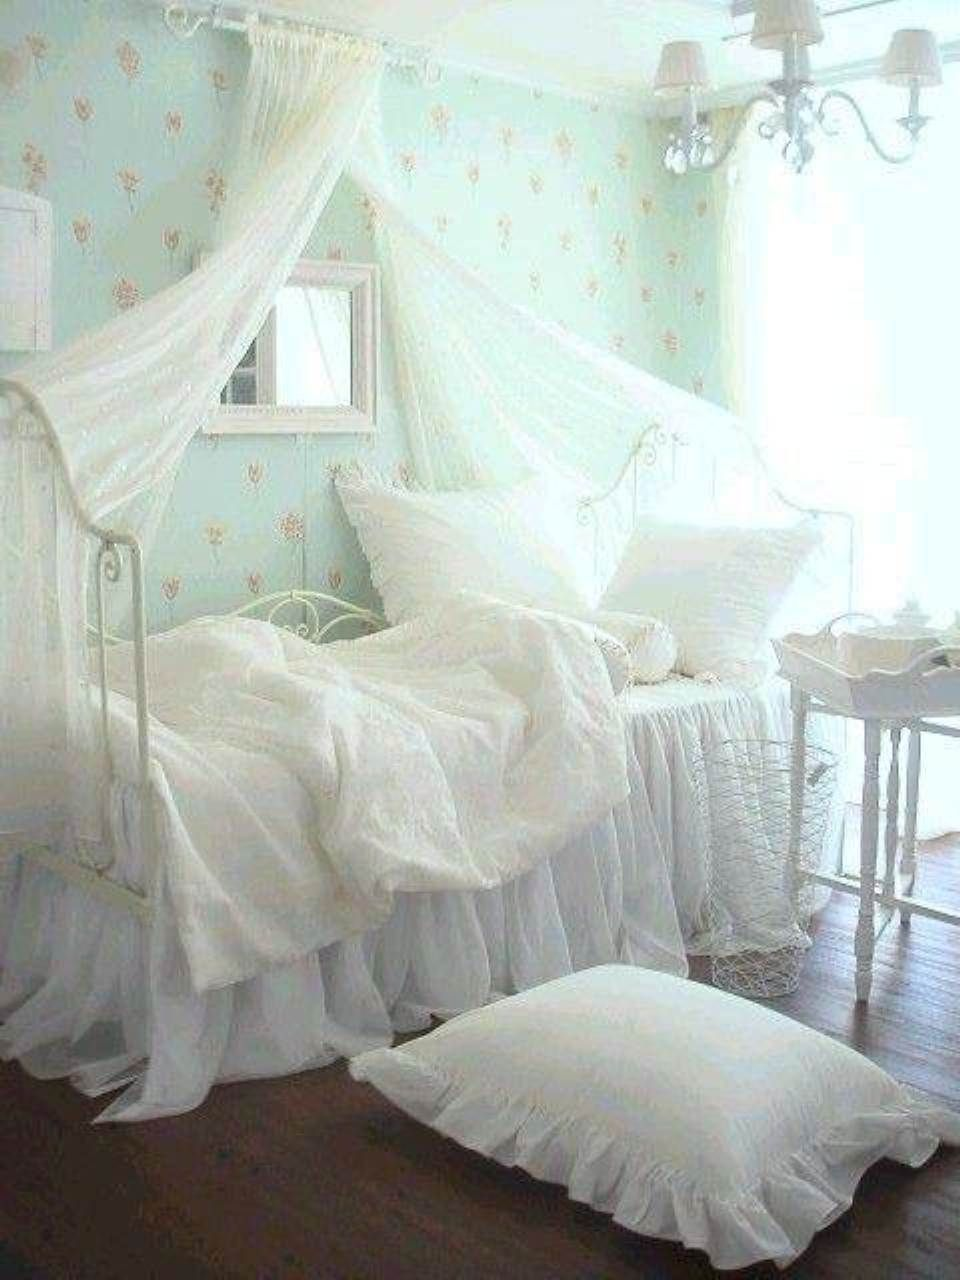 Exceptional Nice Vintage Room Themes For The Bedrooms Vintage Theme Always Manage To  Make A Comeback.